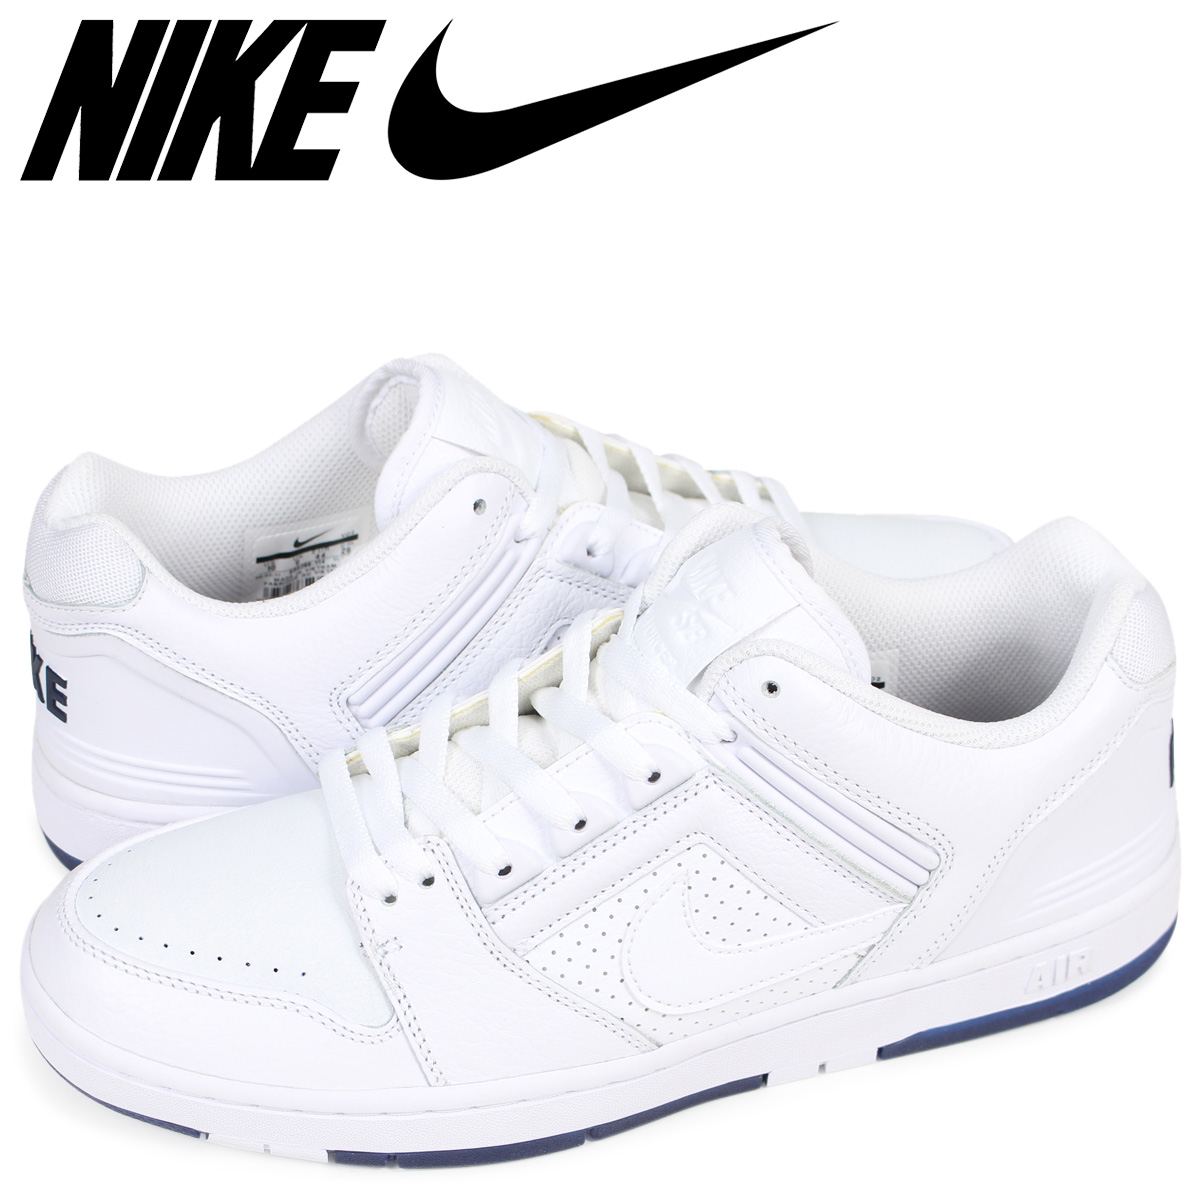 7a3e1fcdca24e ALLSPORTS  NIKE AIR FORCE 2 LOW KEVIN BRADLEY Nike SB air force 2 ...